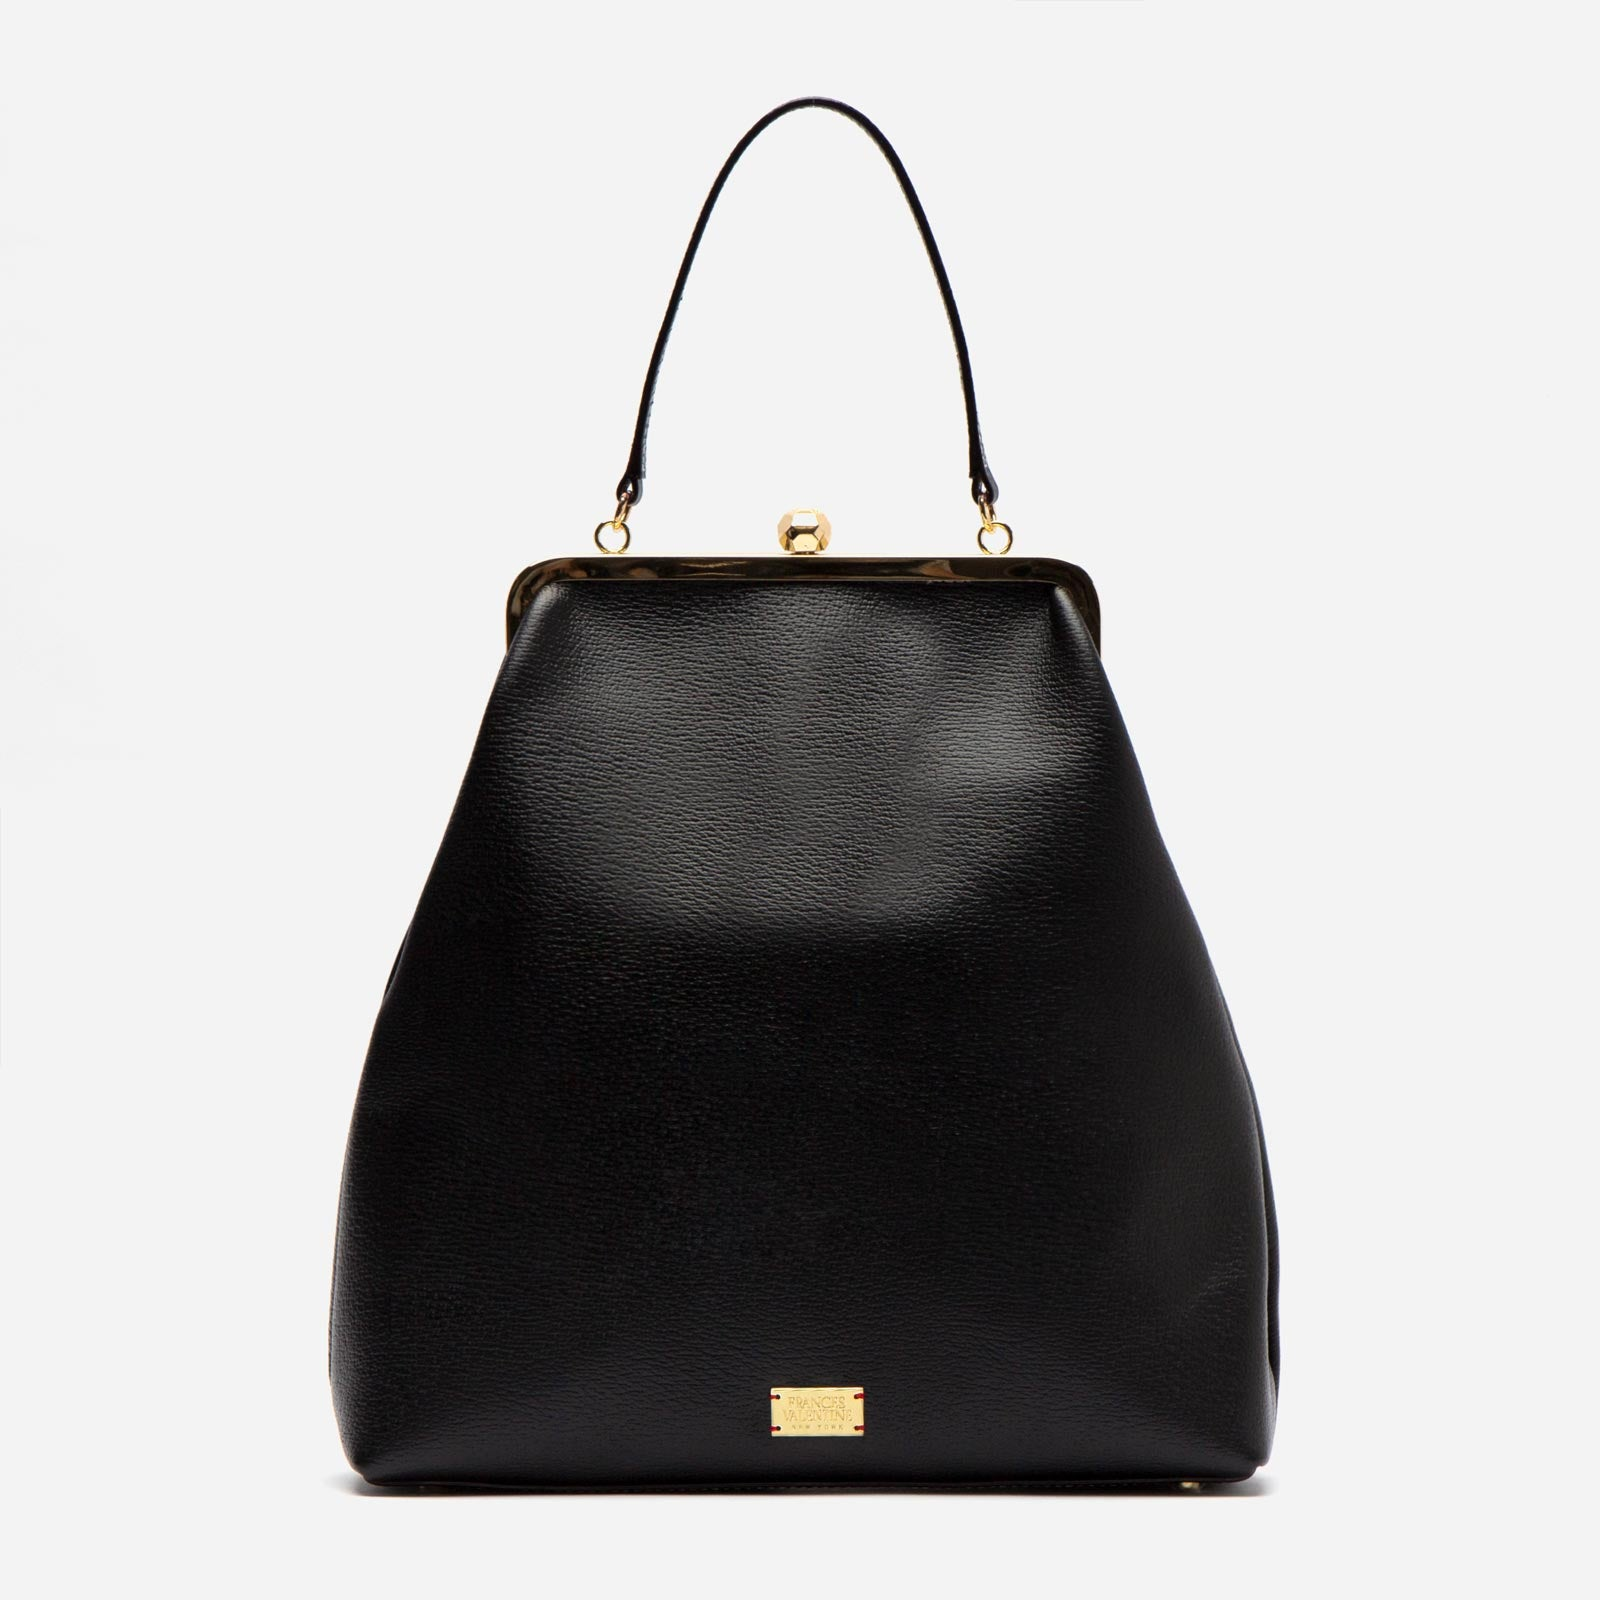 Caroline Frame Bag Boarskin Black - Frances Valentine